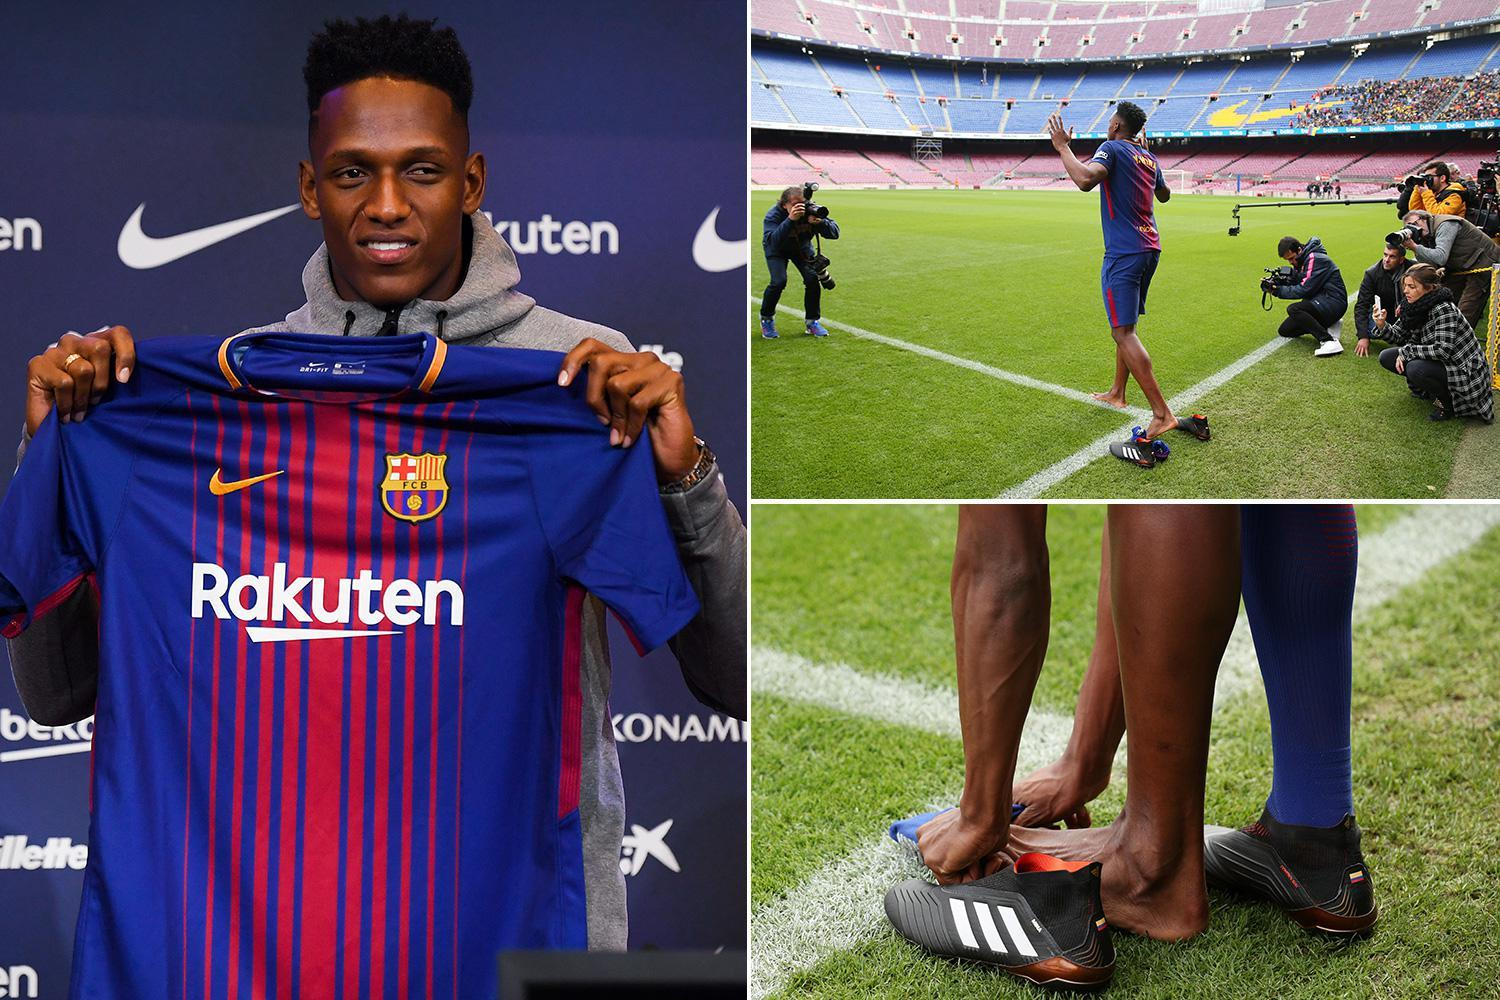 Barcelona new boy Yerry Mina takes boots and socks off to walk onto Nou Camp pitch at unveiling